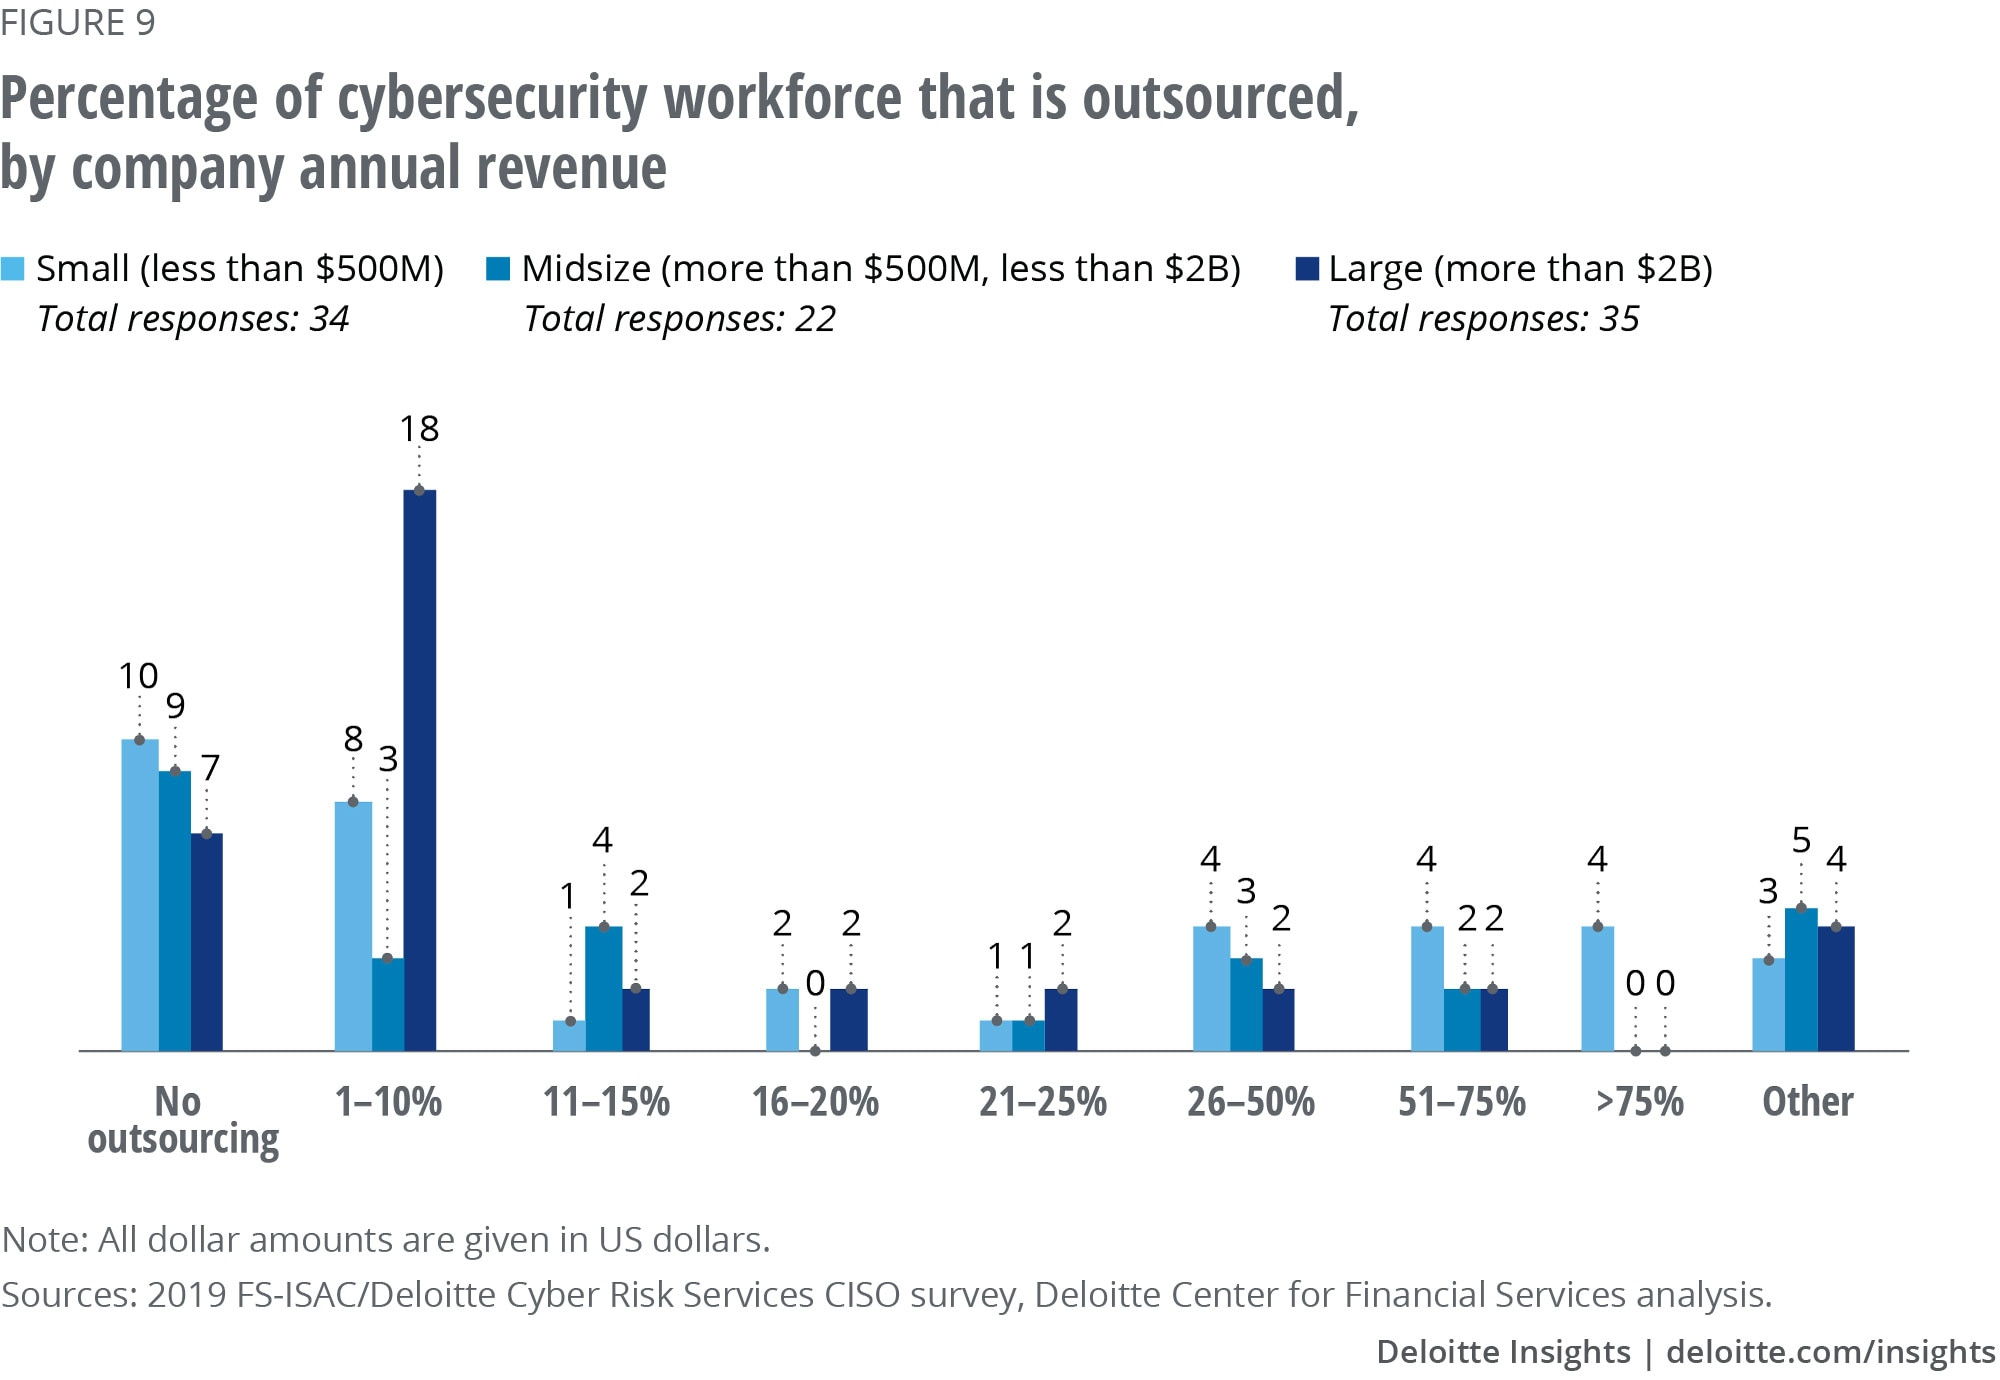 Percentage of cybersecurity workforce that is outsourced, by company annual revenue